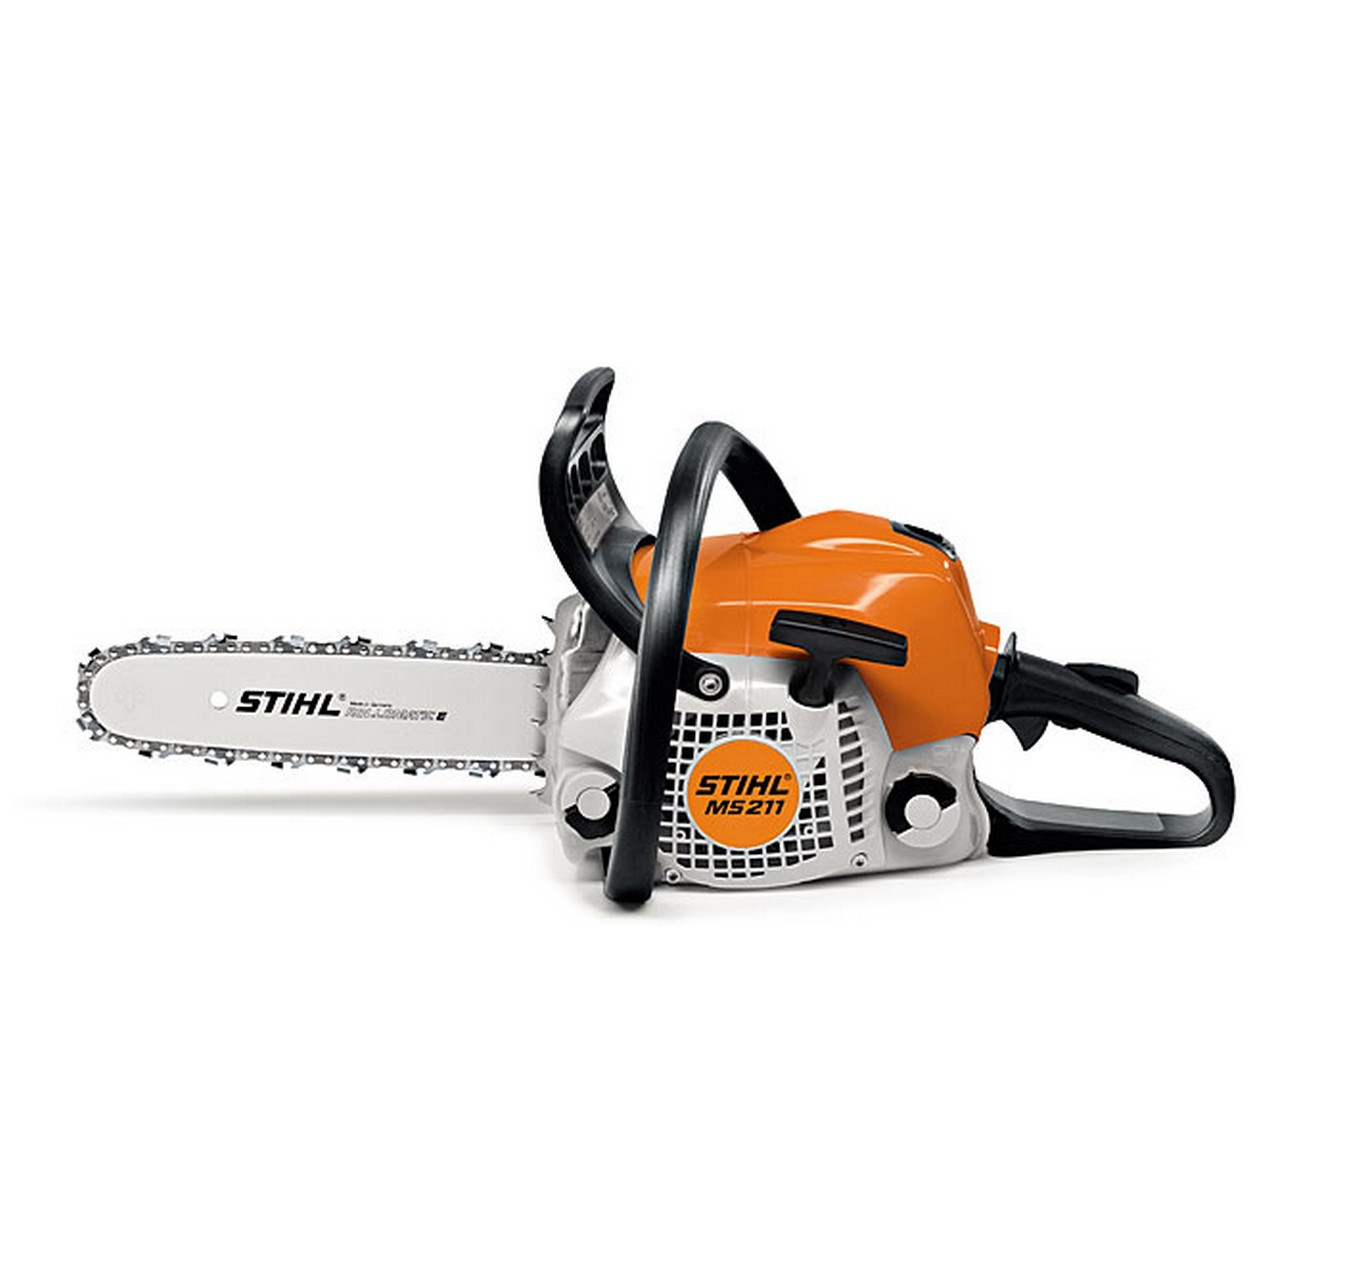 MS 211 Chainsaw 16